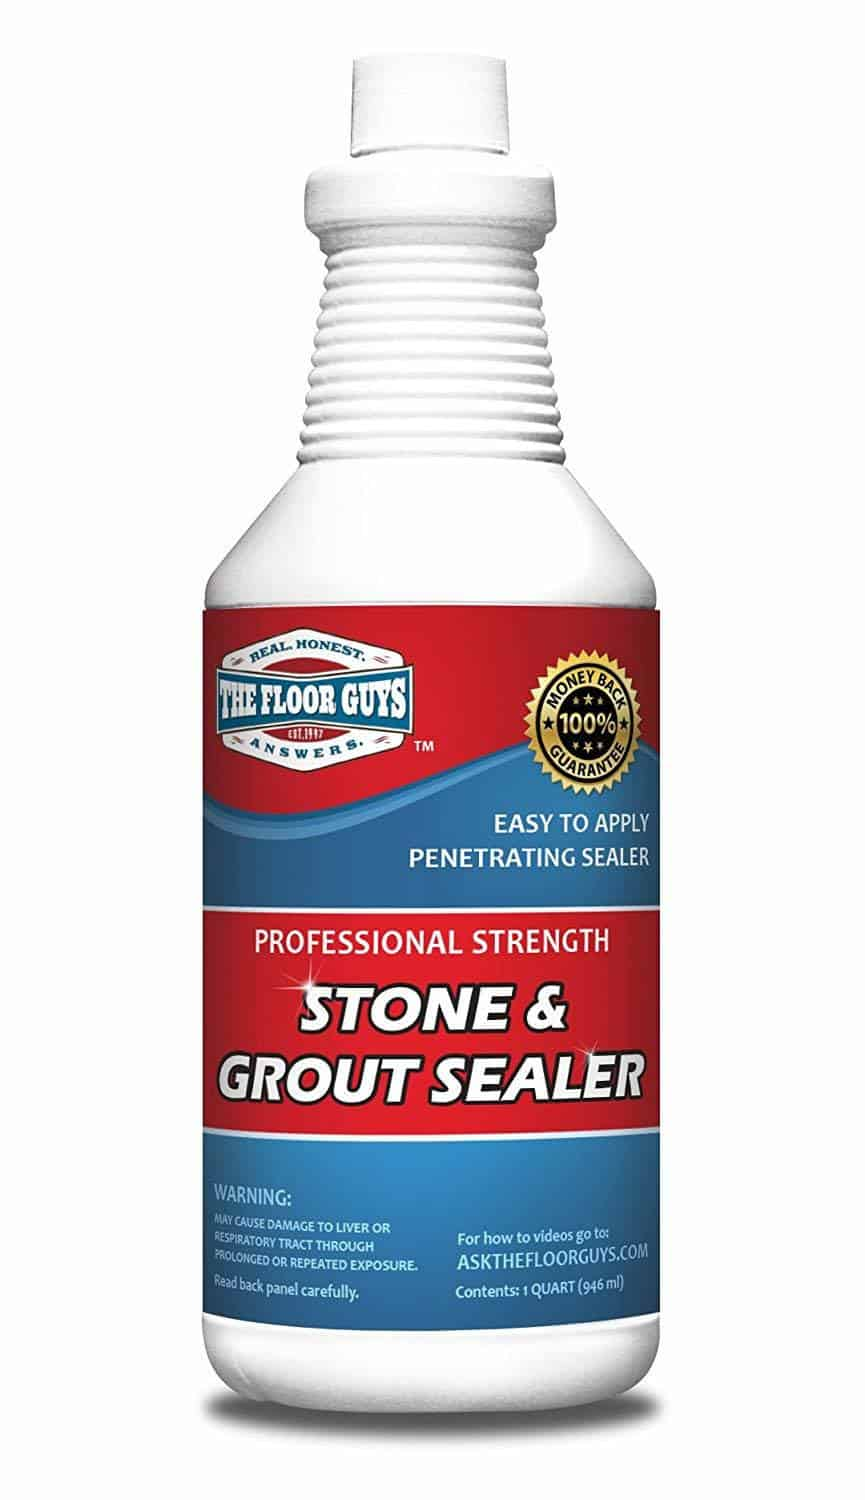 Floor Guys Grout & Granite Penetrating Sealer